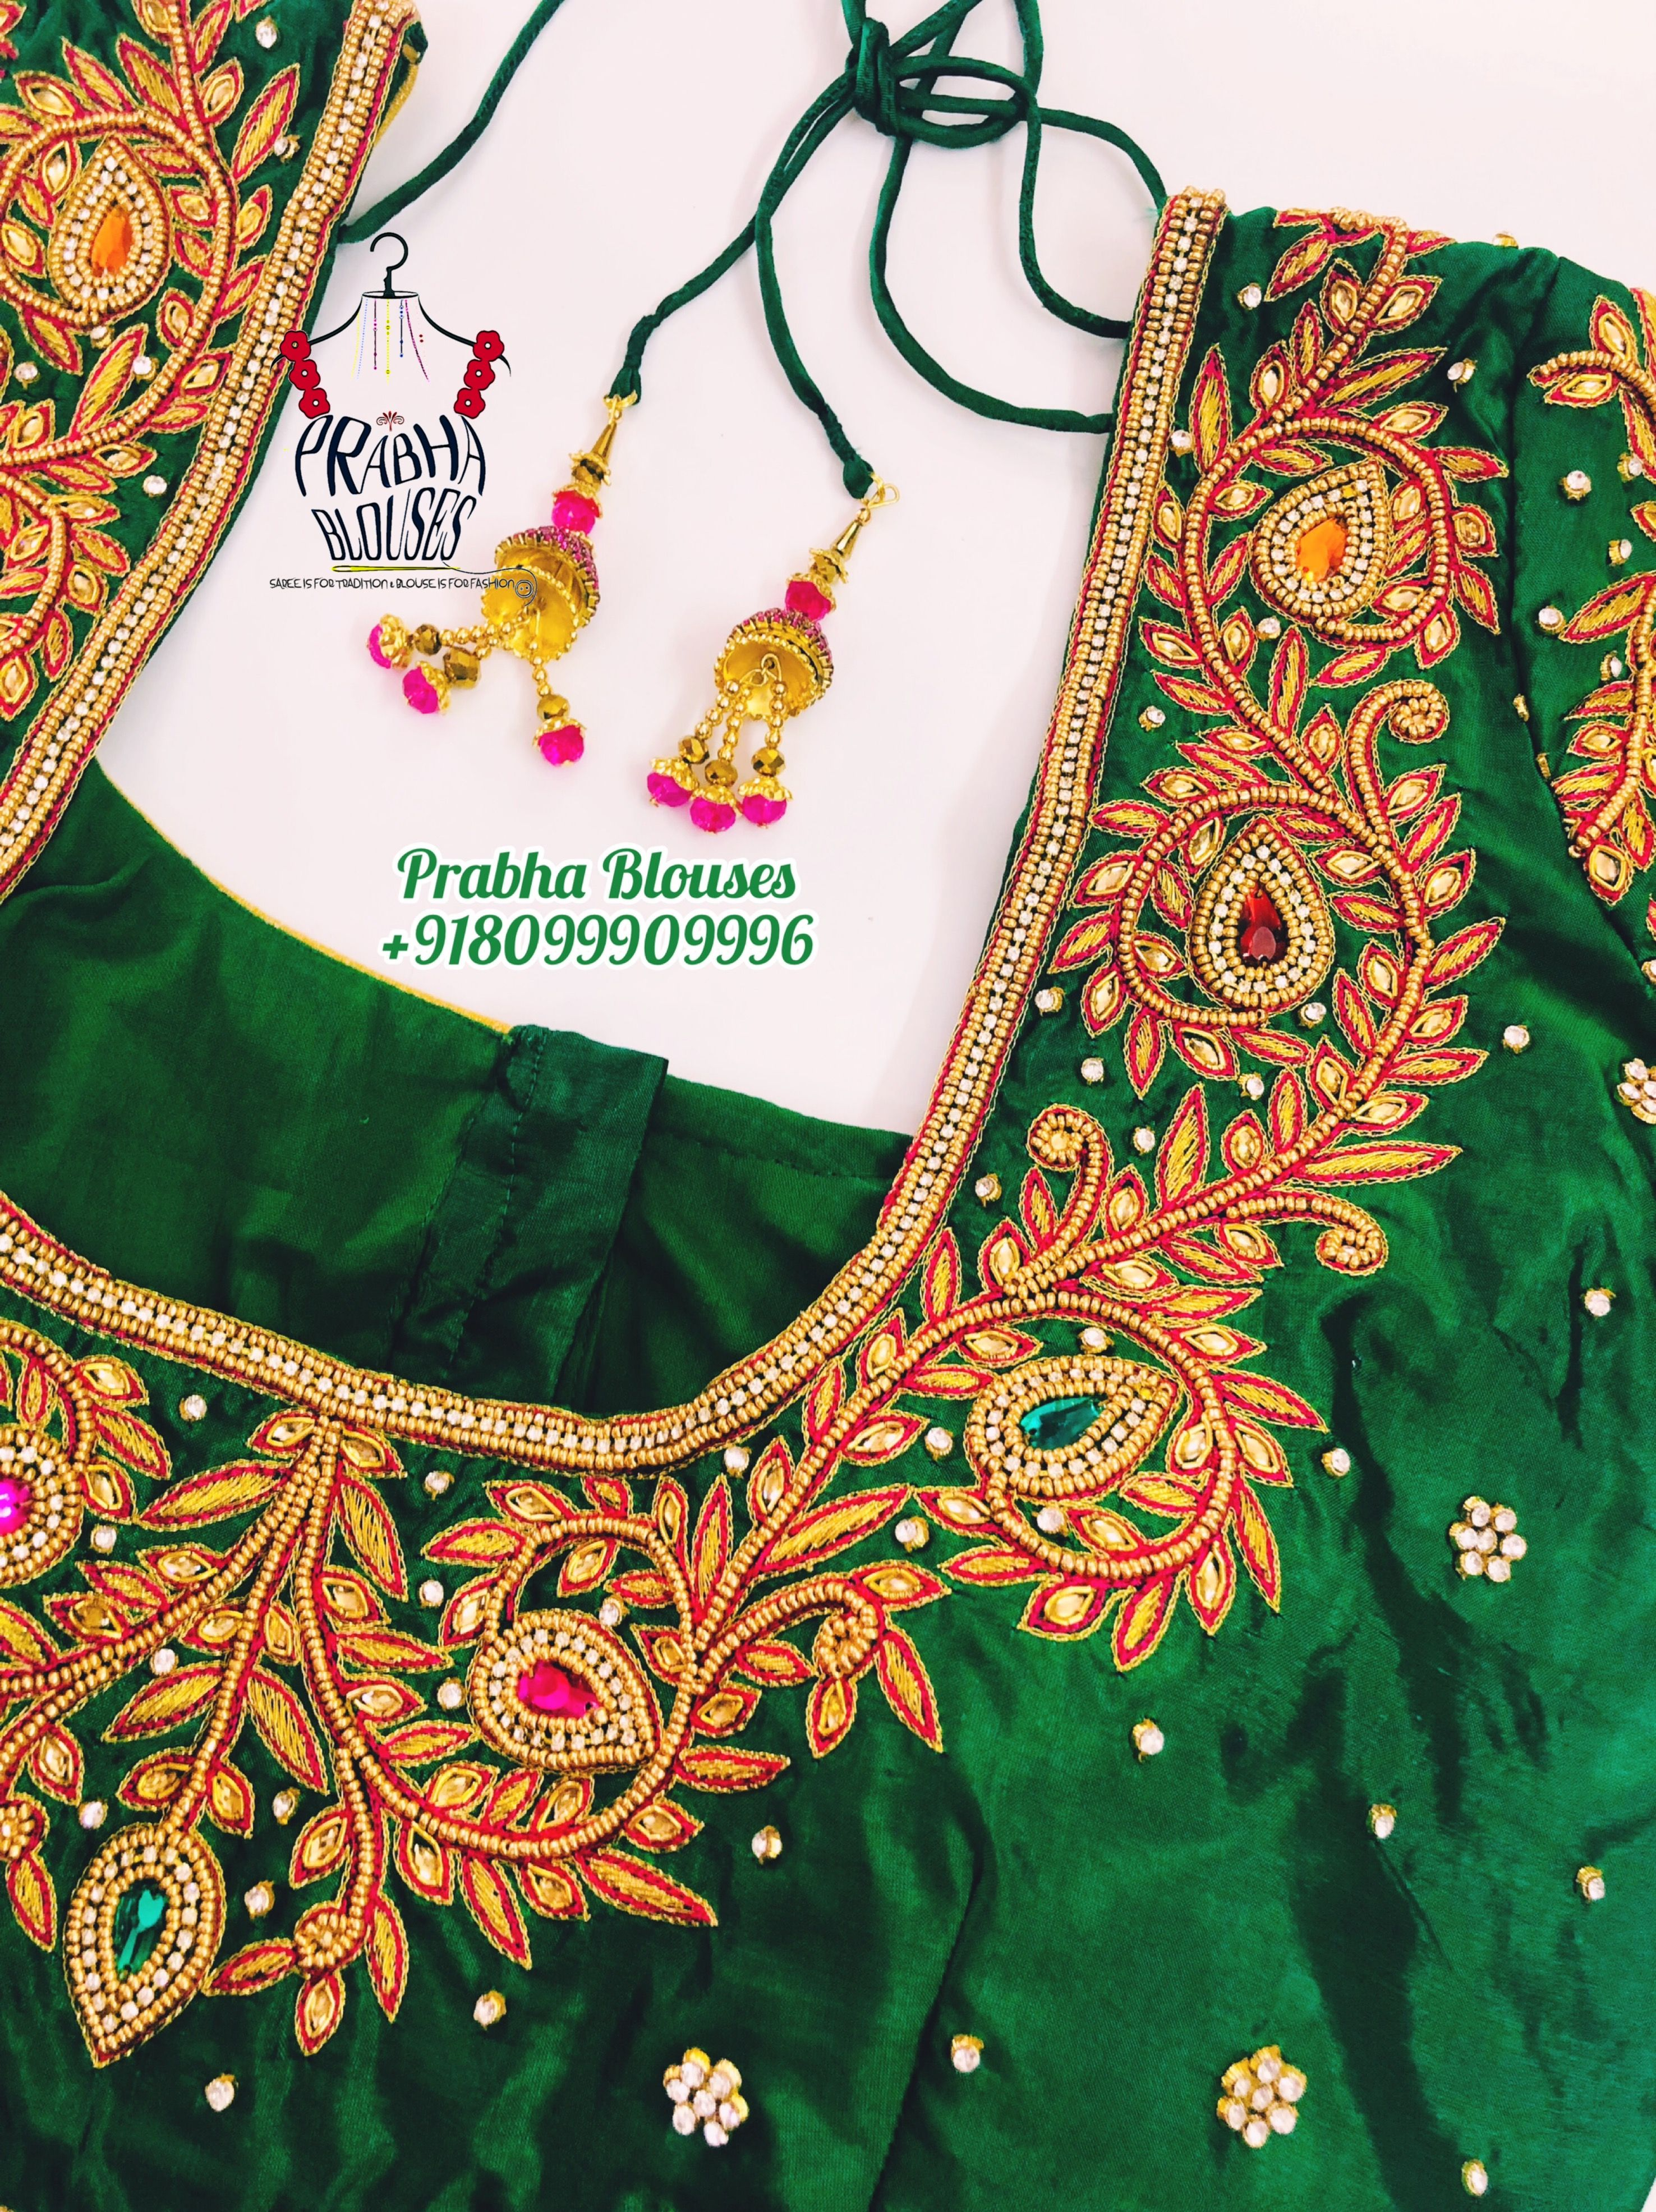 Pin By Chandru On Architecture: Pin By Prabha Blouses On PRABHA BLOUSES